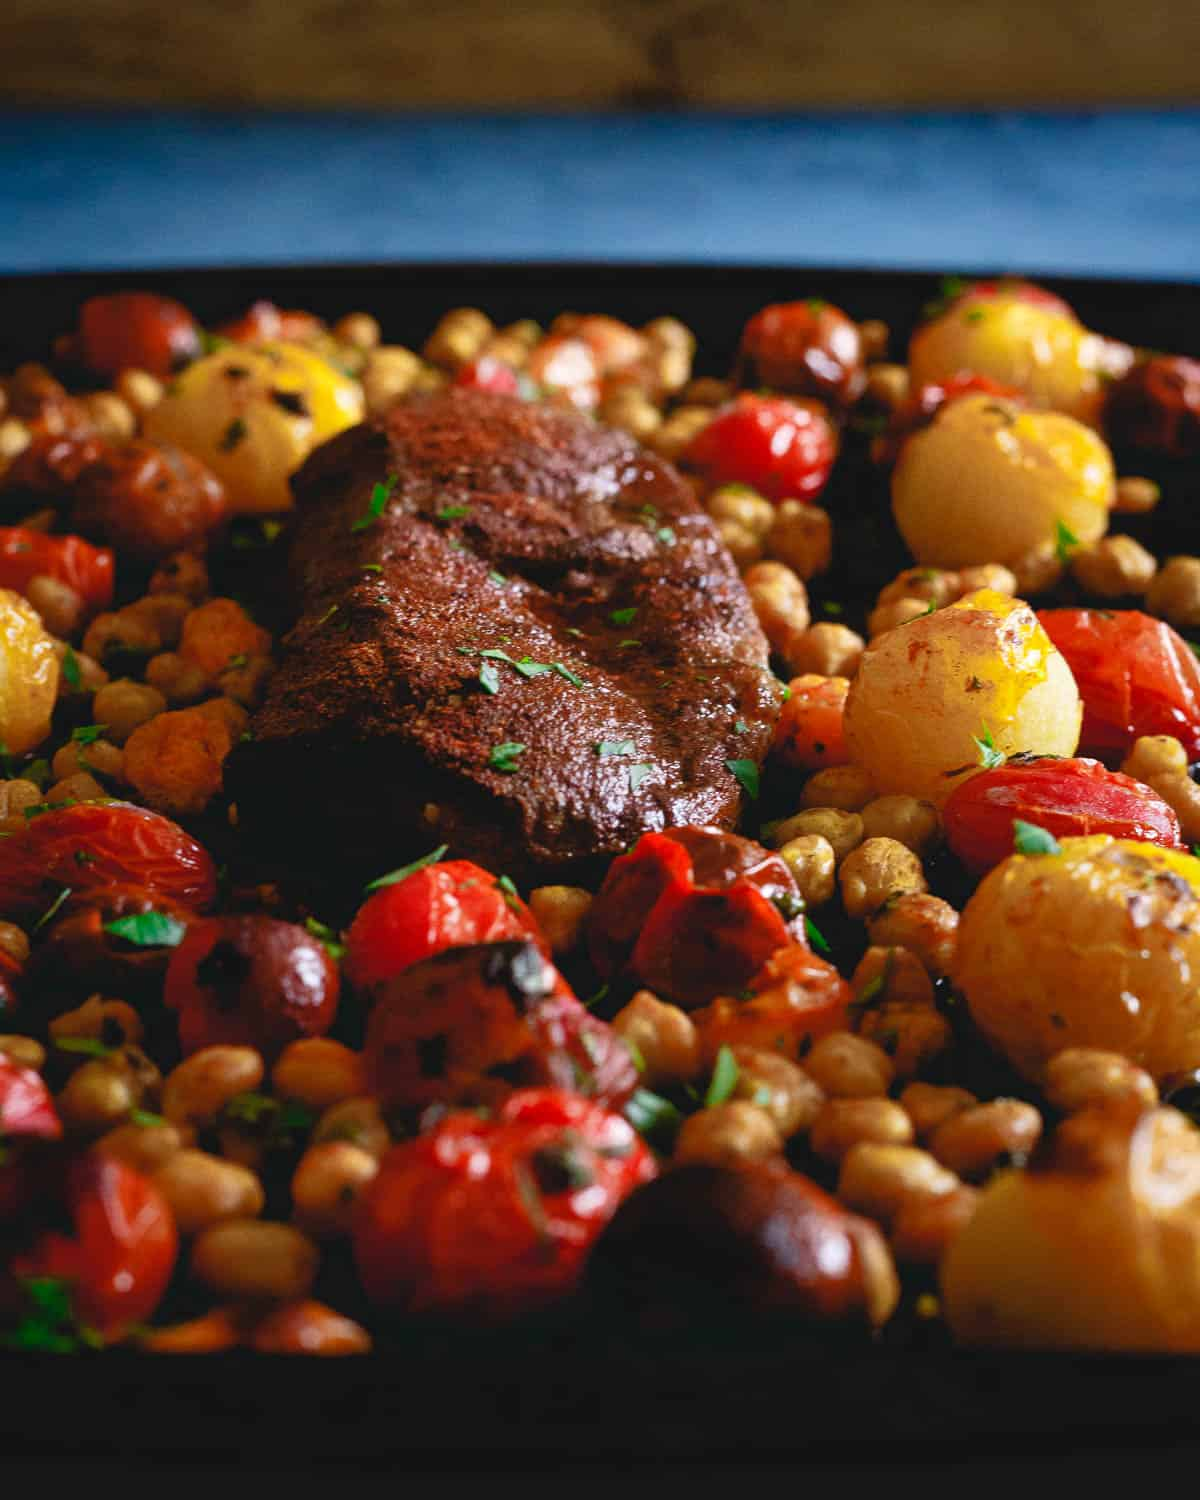 This sheet pan mediterranean roasted lamb dinner can't be beat. Ready in just 20 minutes and only one pan to clean up after!